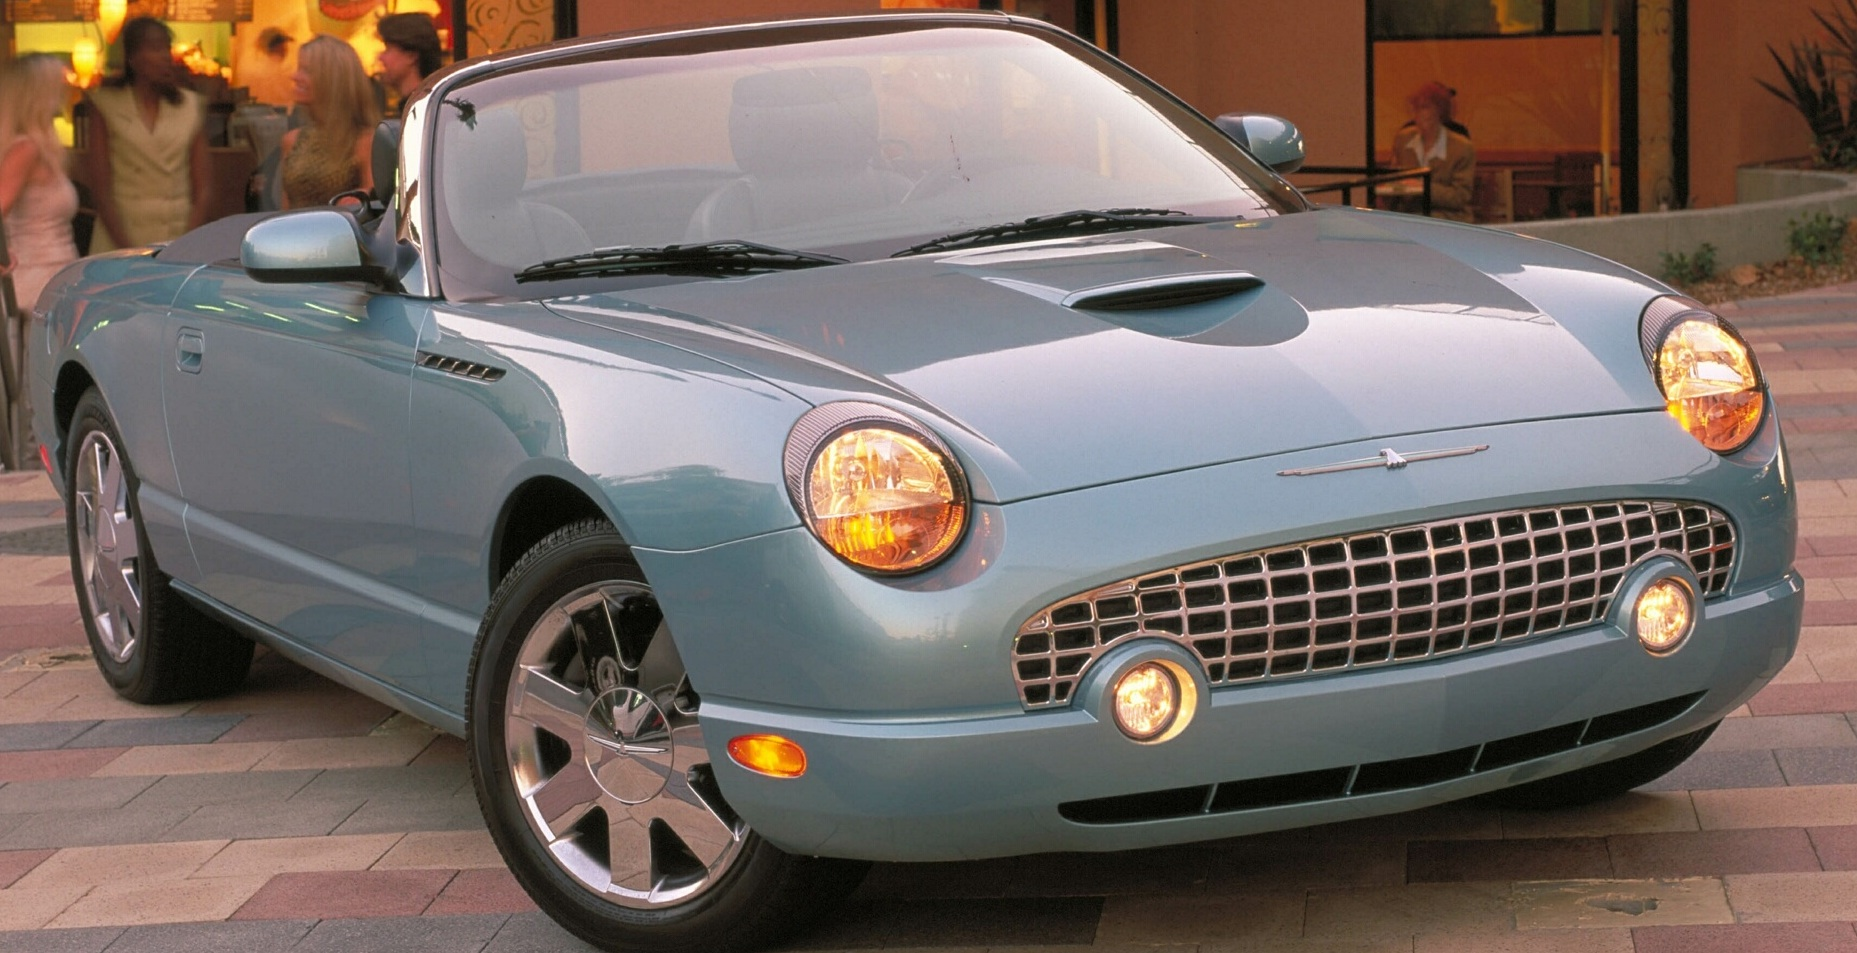 Is now a good time to buy a 2002 2005 thunderbird